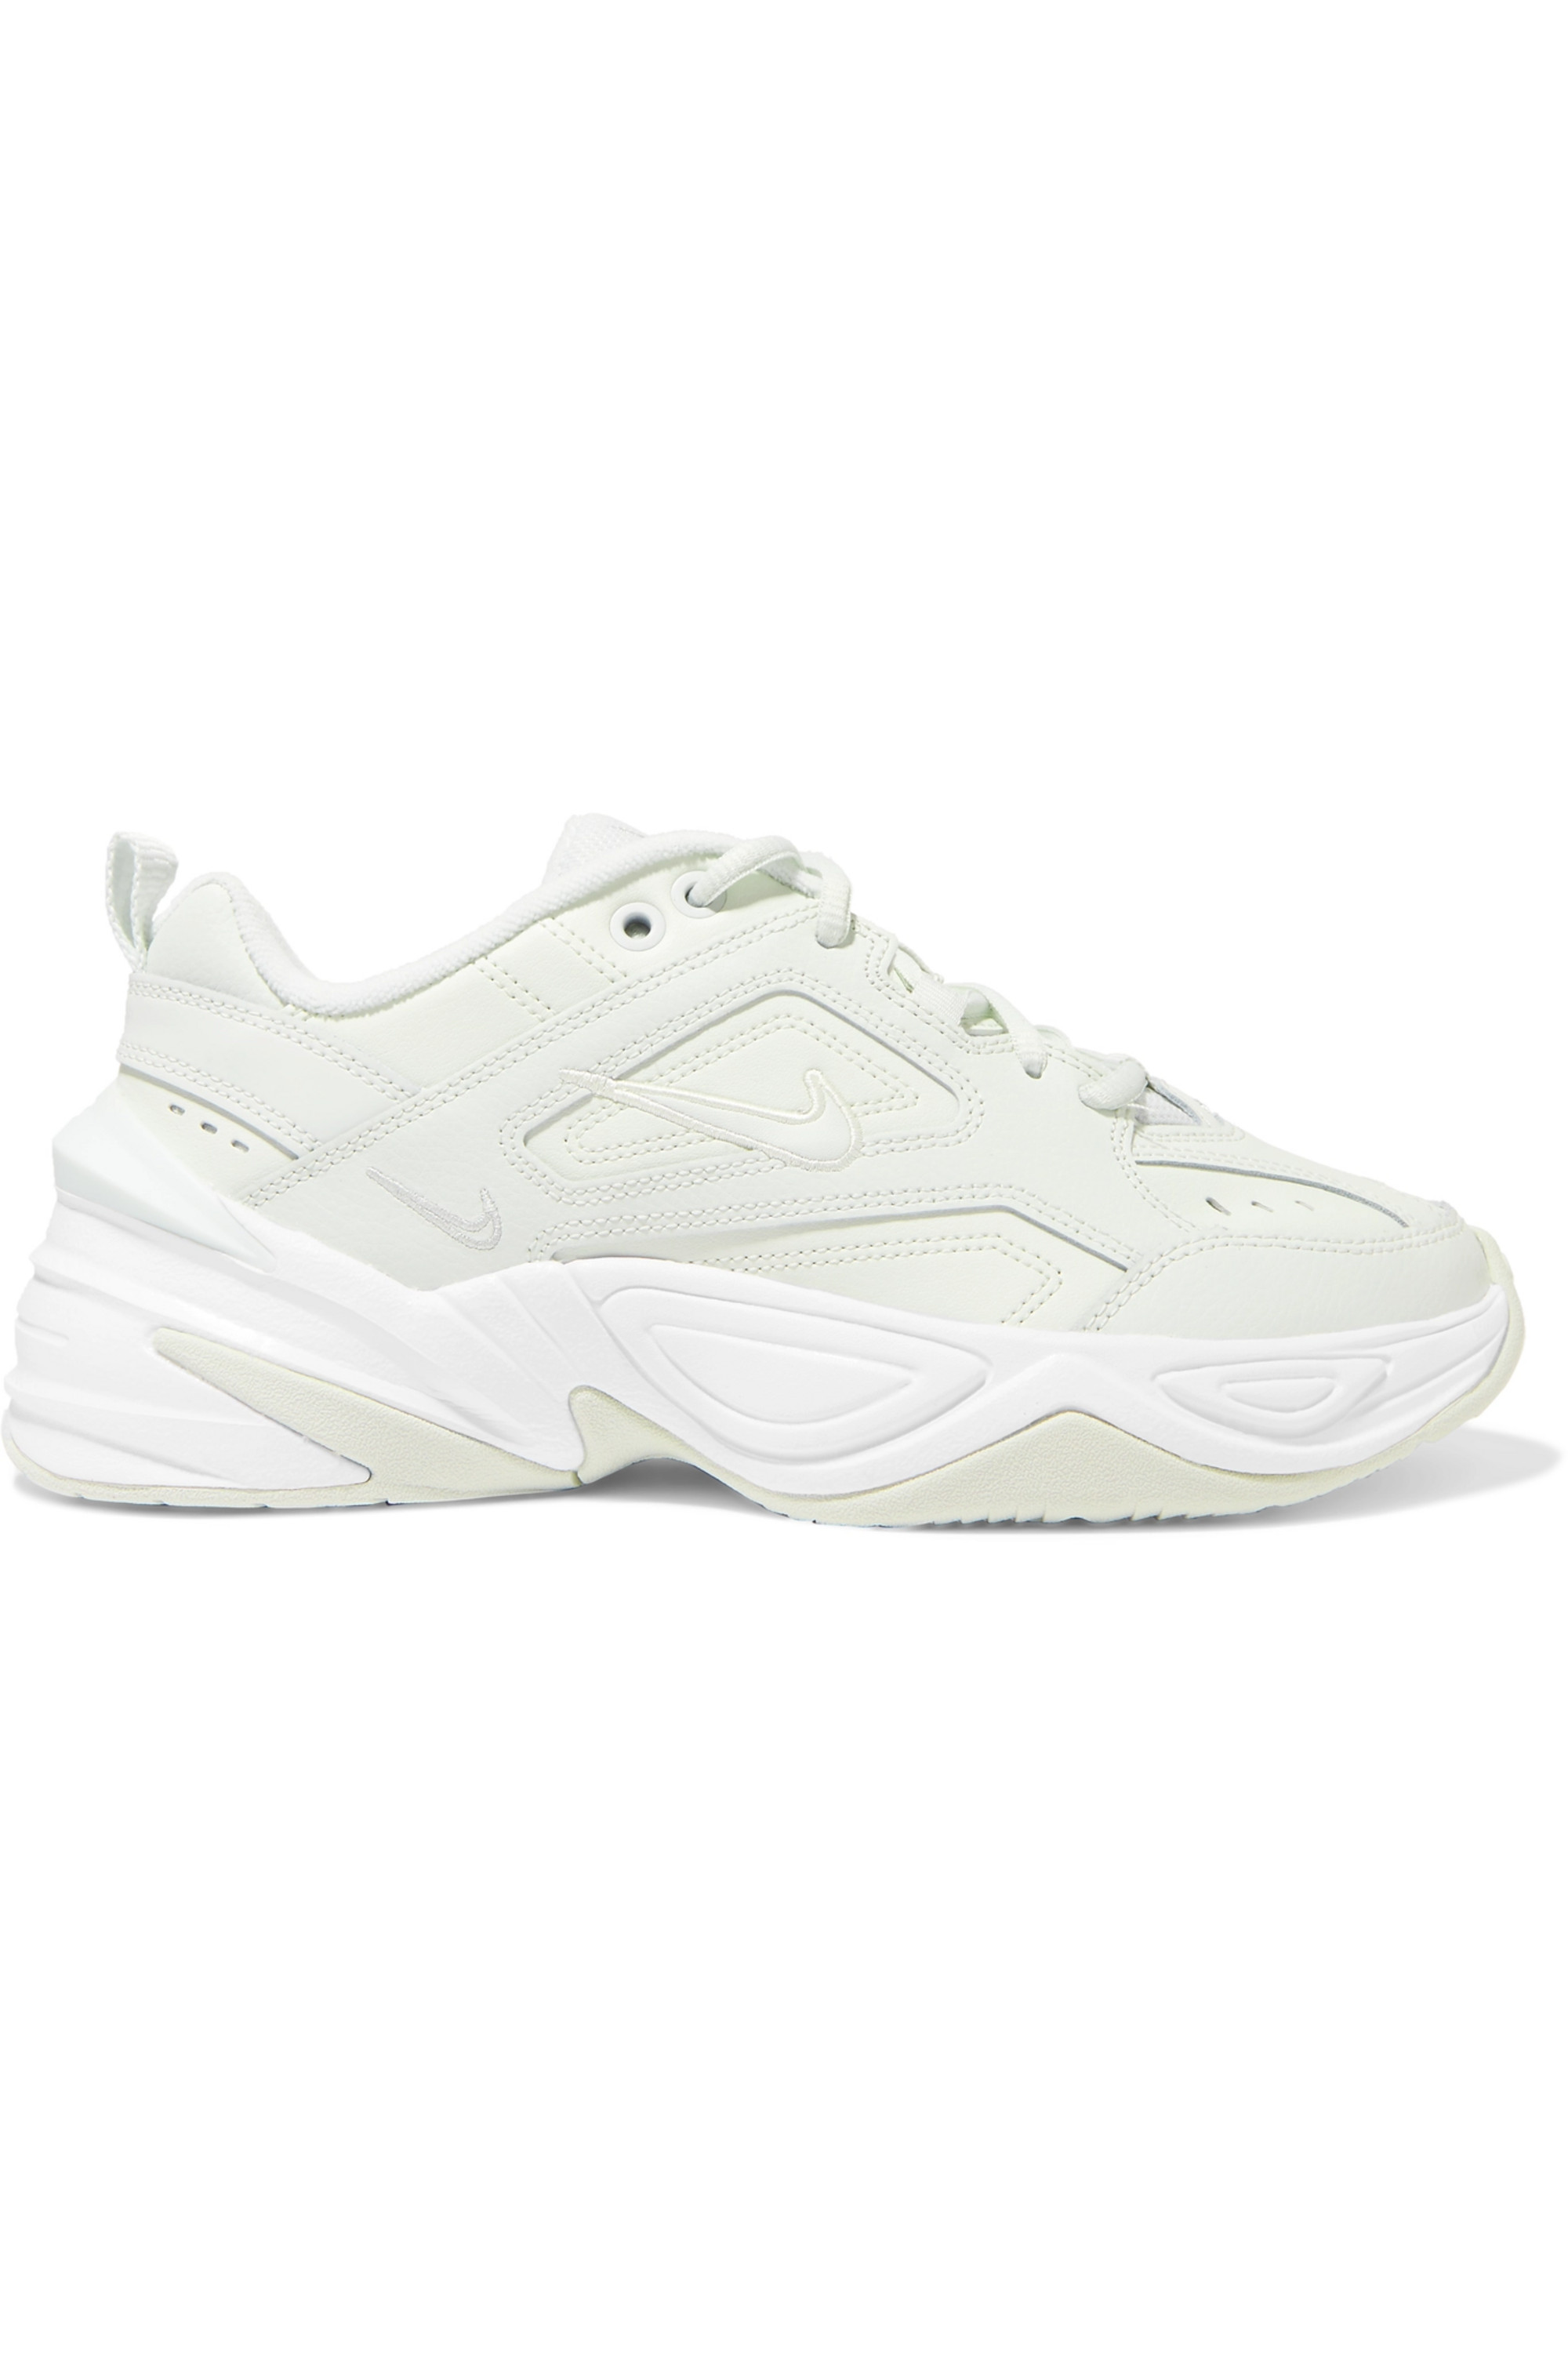 Green M2K Tekno leather and mesh